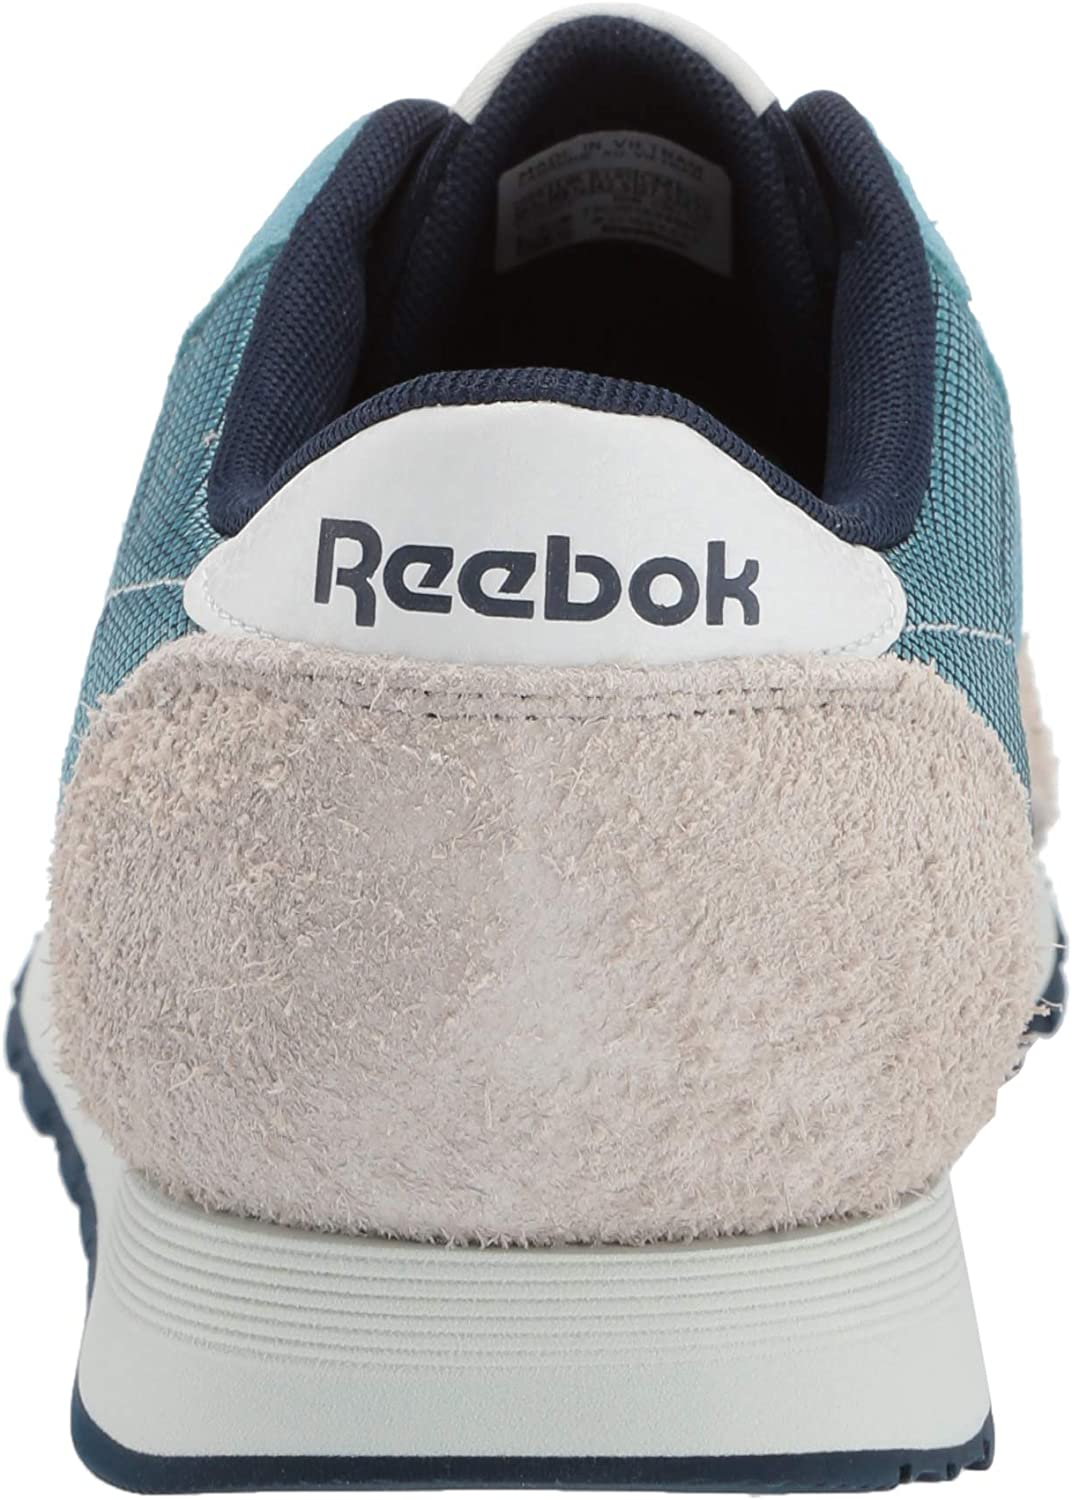 Reebok Classic Nylon, Sneakers Basses Homme Mineral Mist Collegiate Navy Light Sand Polar